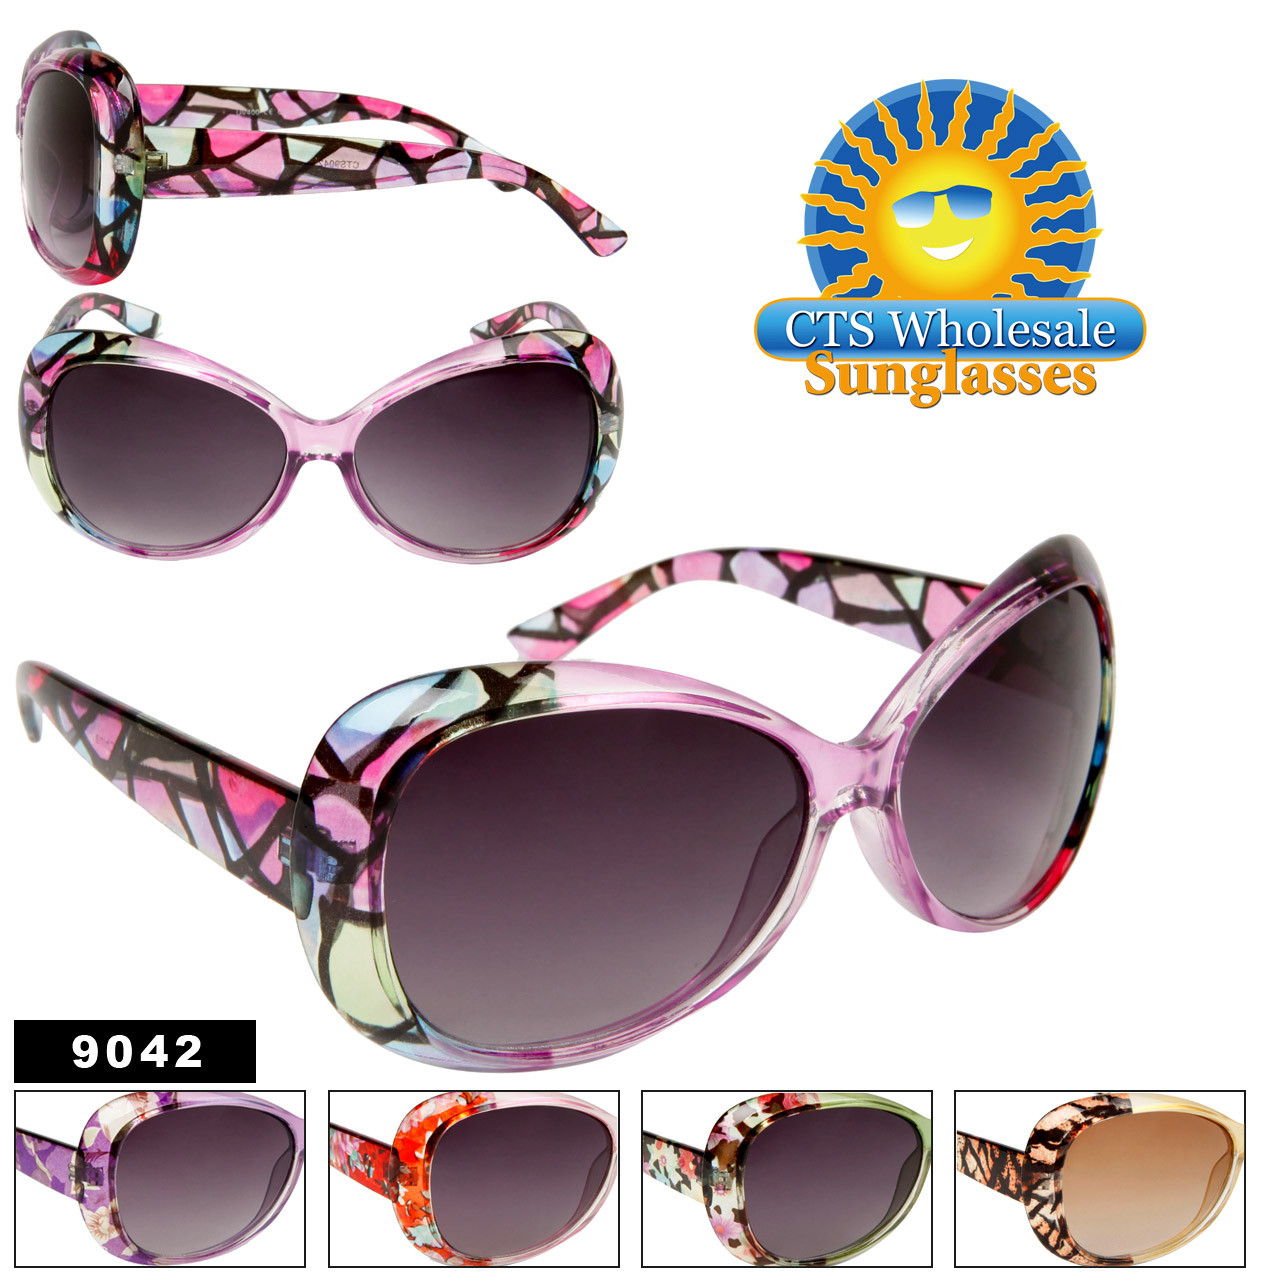 Gorgeous NEW Fashion Sunglasses for Women!